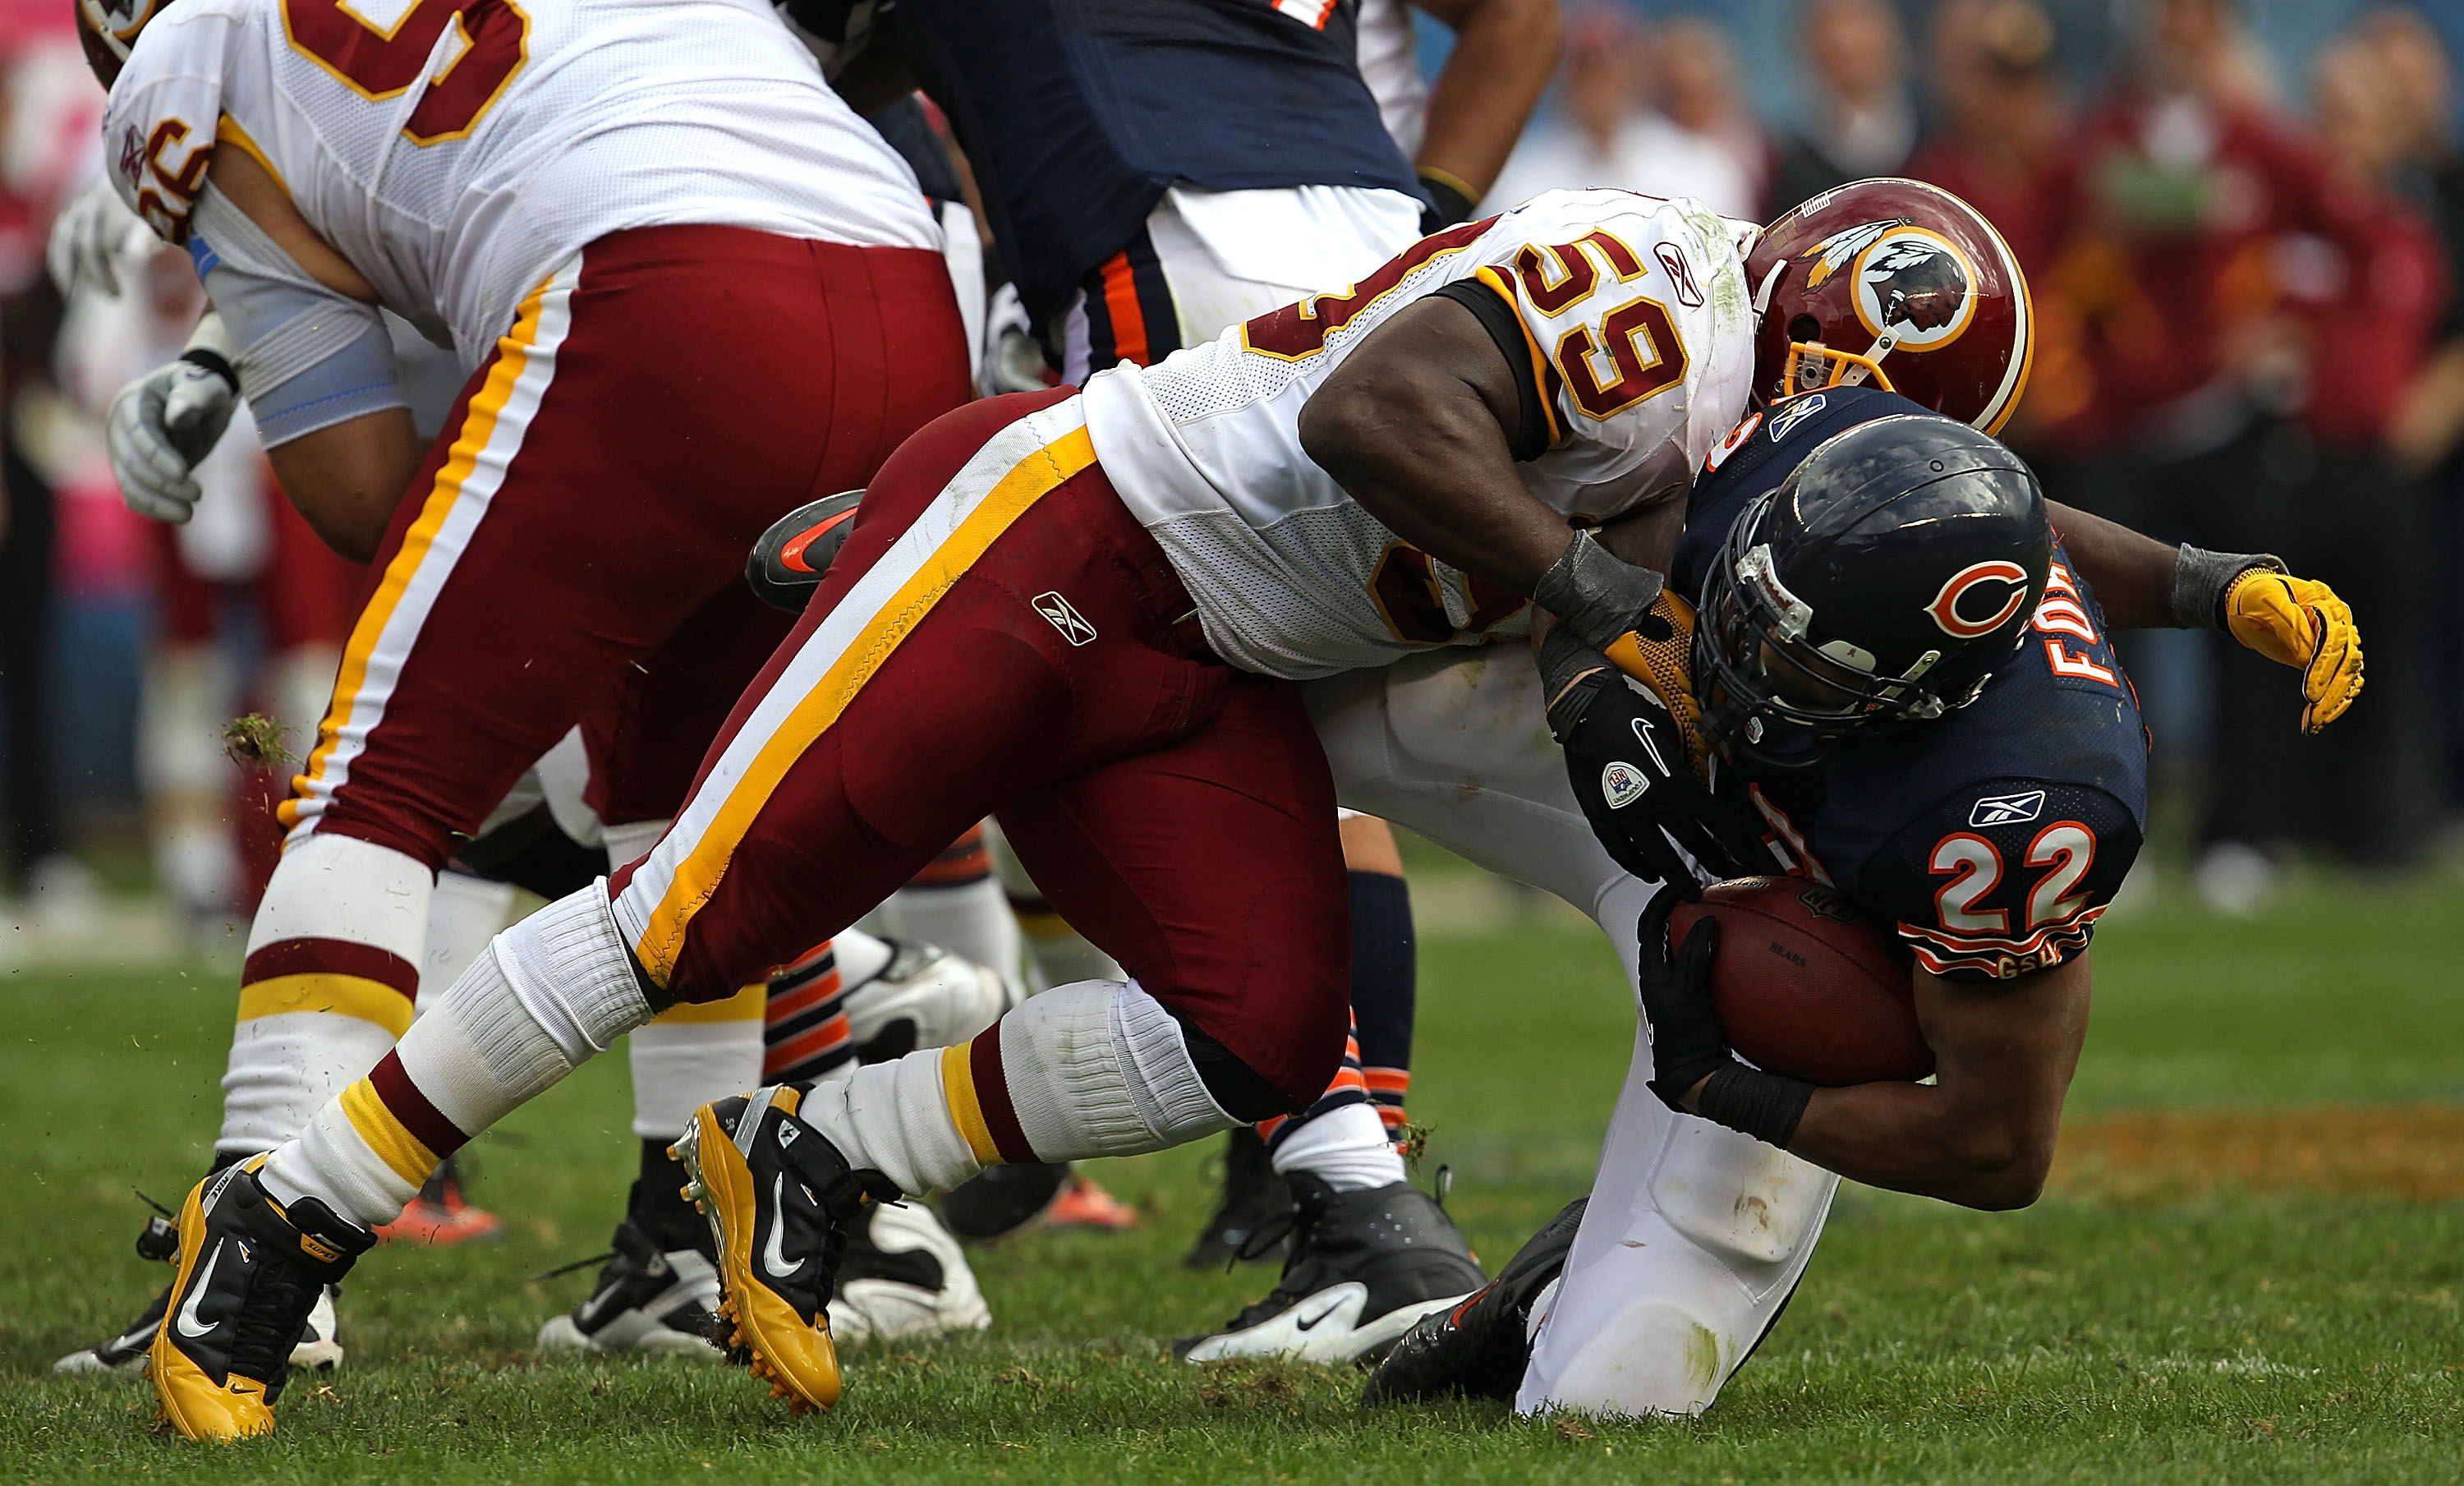 CHICAGO - OCTOBER 24: Matt Forte #22 of the Chicago Bears is dropped by London Fletcher #59 of the Washington Redskins at Soldier Field on October 24, 2010 in Chicago, Illinois. The Redskins defeated the Bears 17-14. (Photo by Jonathan Daniel/Getty Images